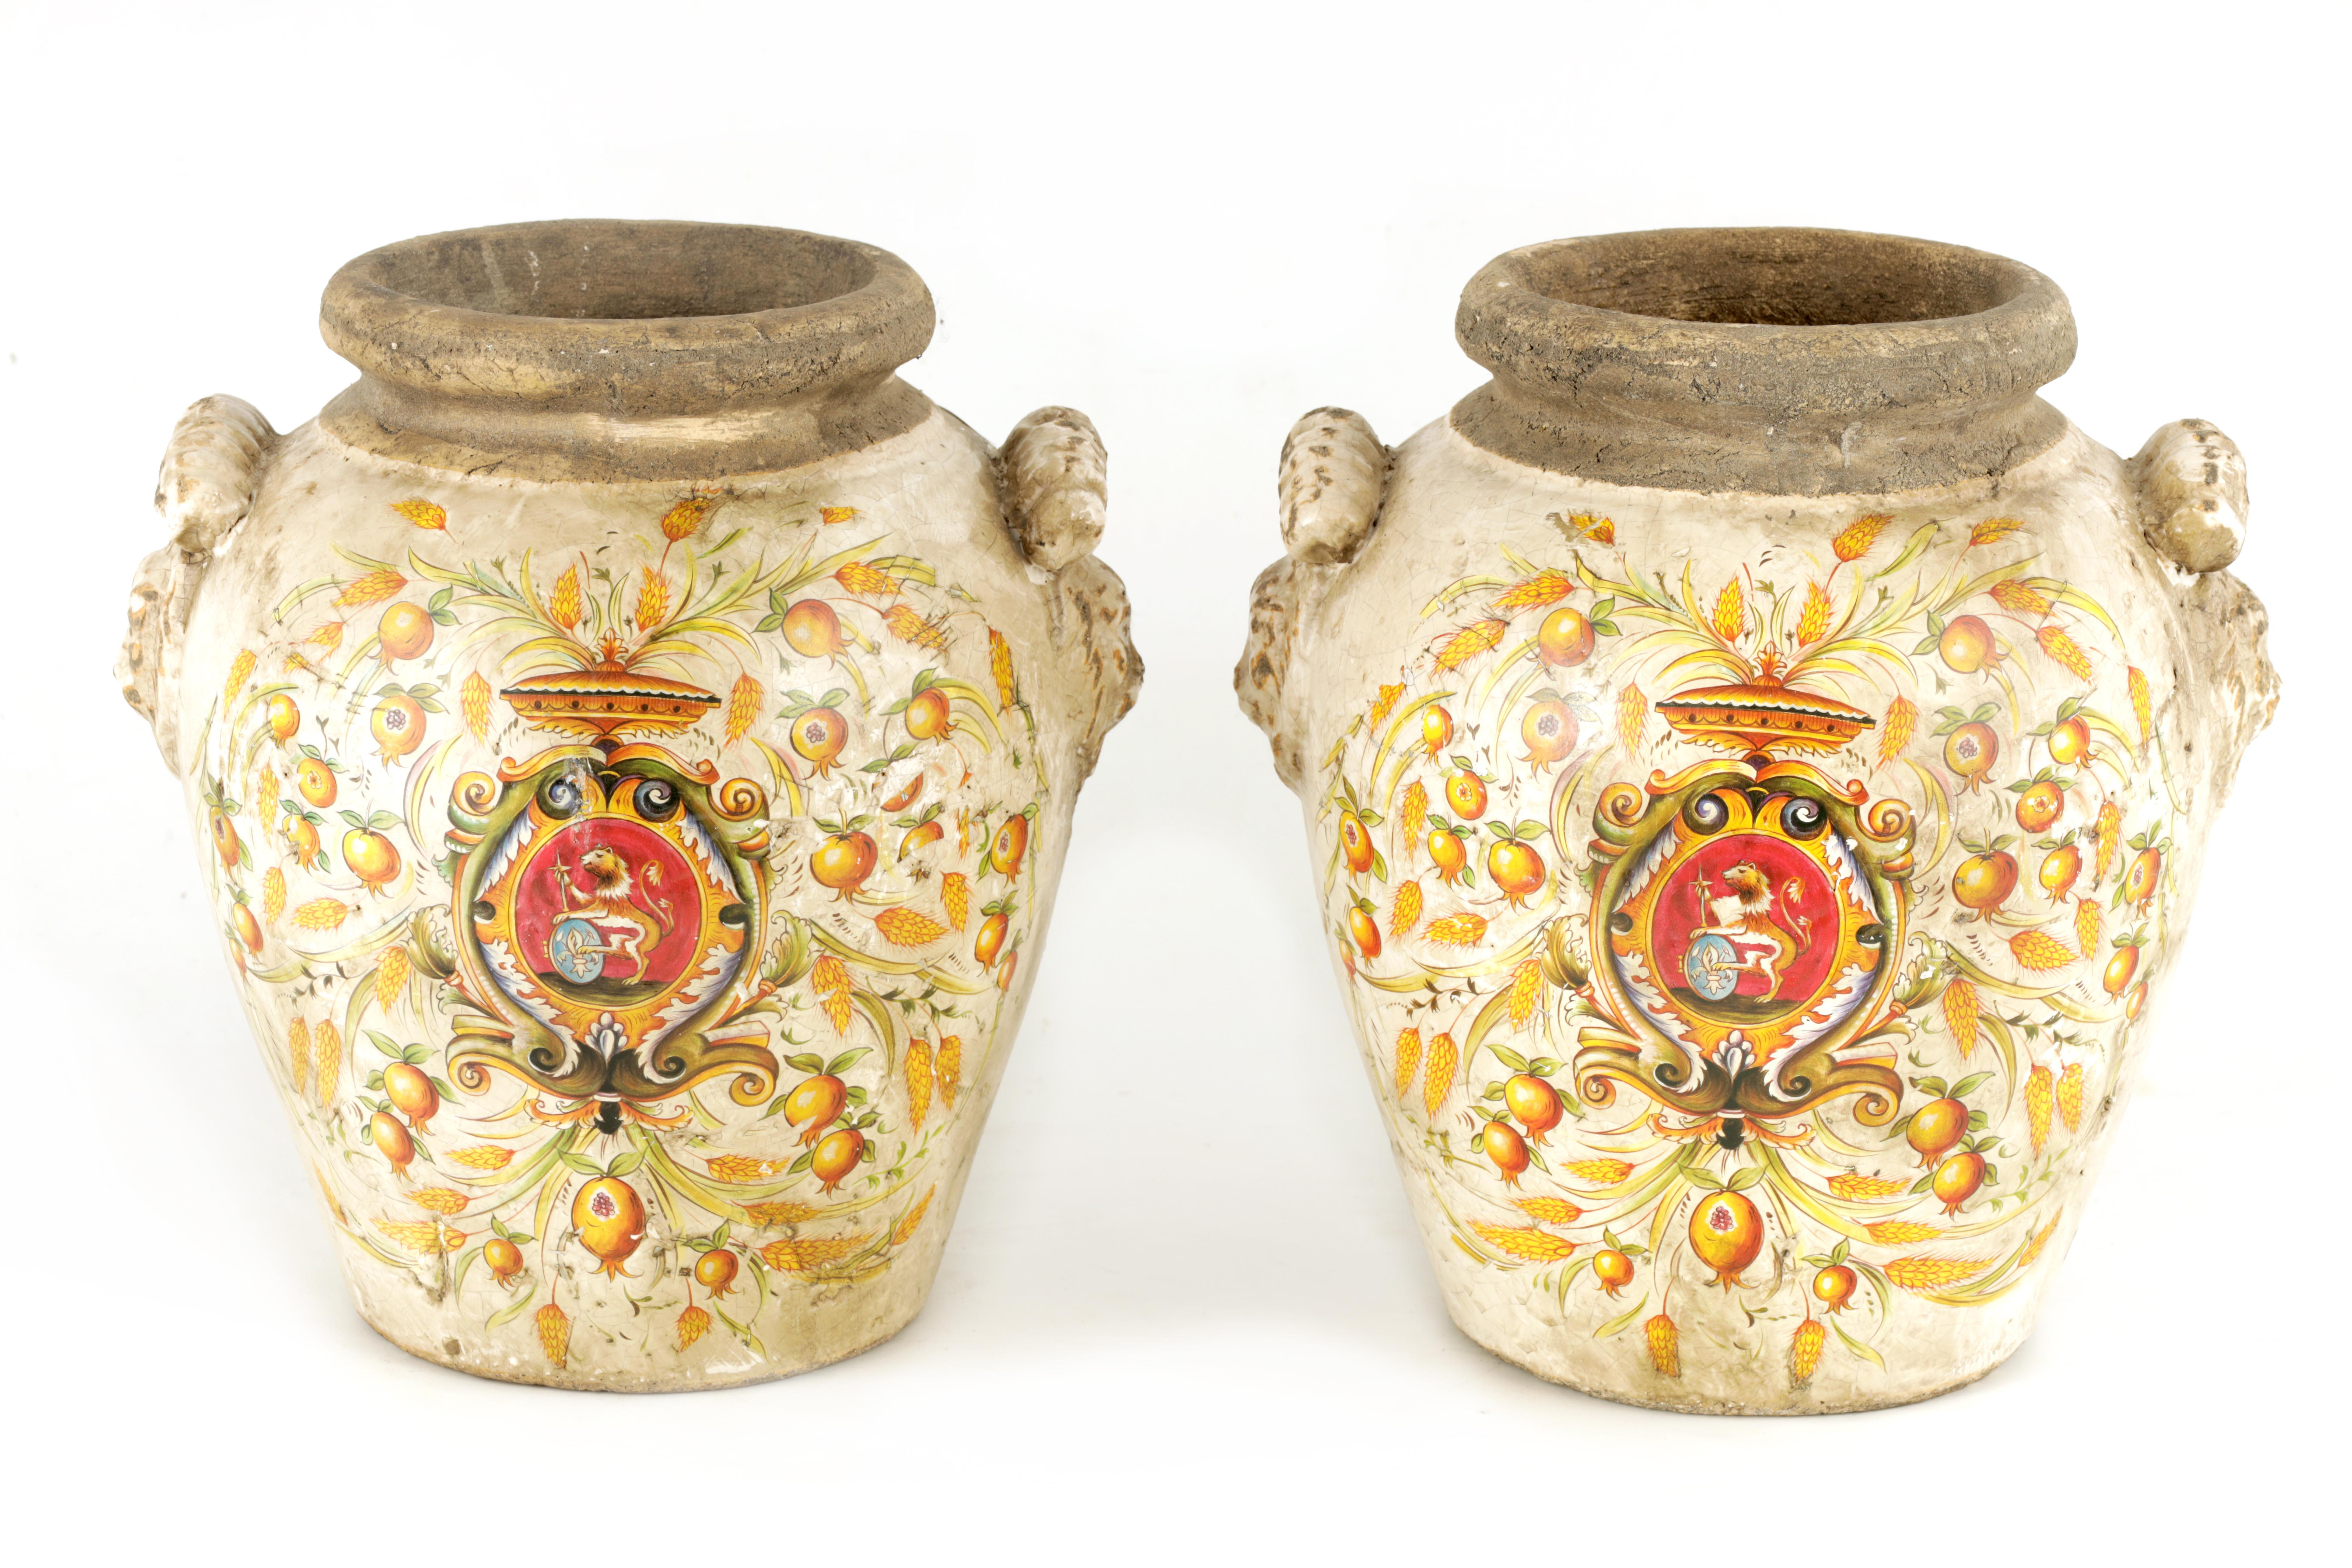 A PAIR OF EARLY ITALIAN EARTHENWARE ARMORIAL VASES with lion mask handles and painted armorials